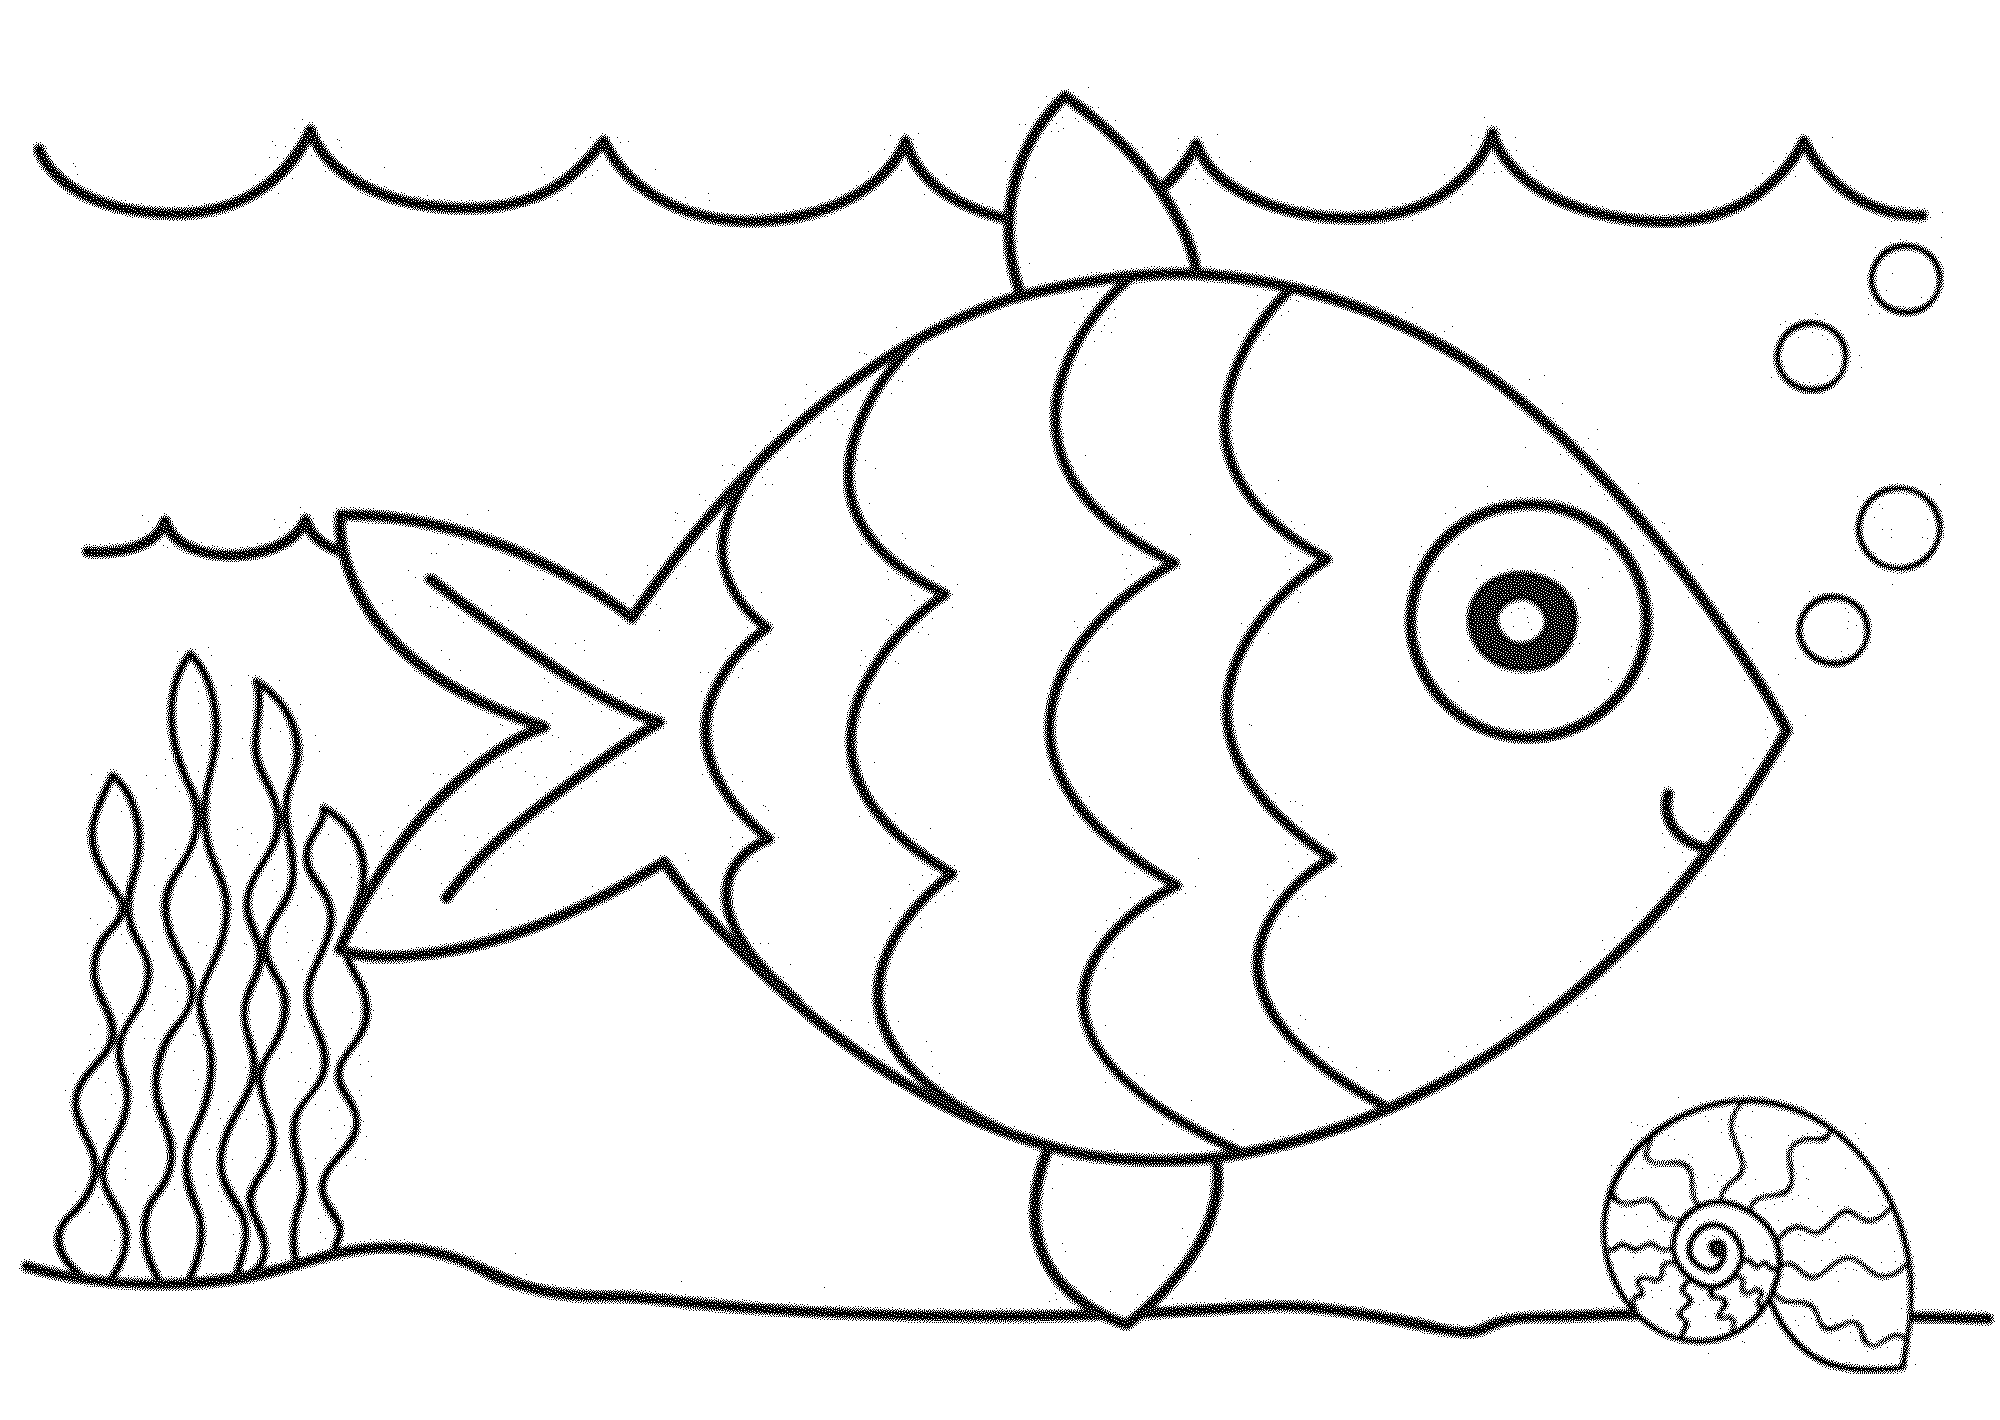 Free Under The Sea Clipart Black And White, Download Free.